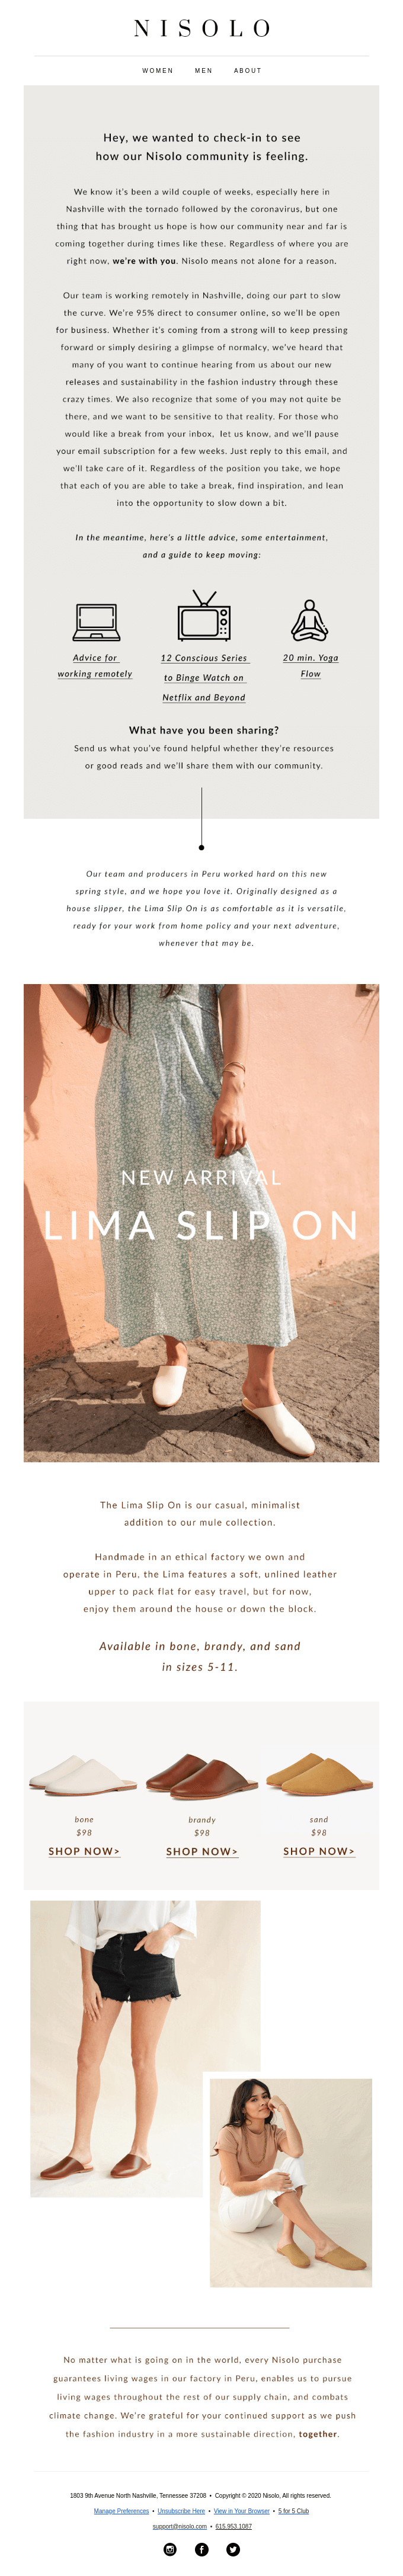 Our latest slip-on is here, just in time for social distancing.